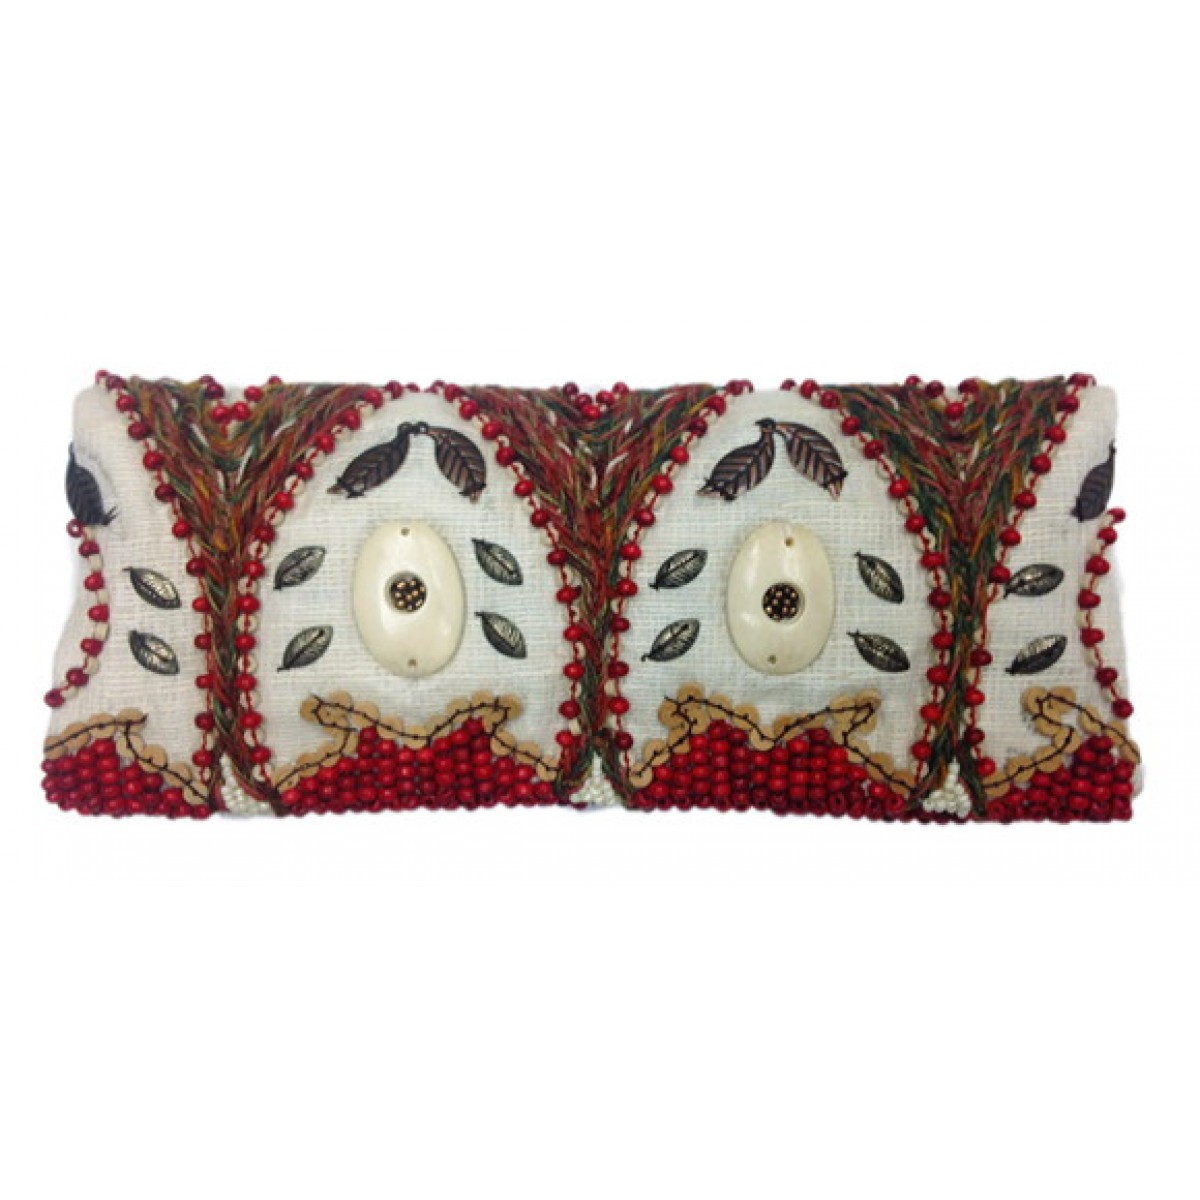 Foldover Clutch With Bone / Wood Beads